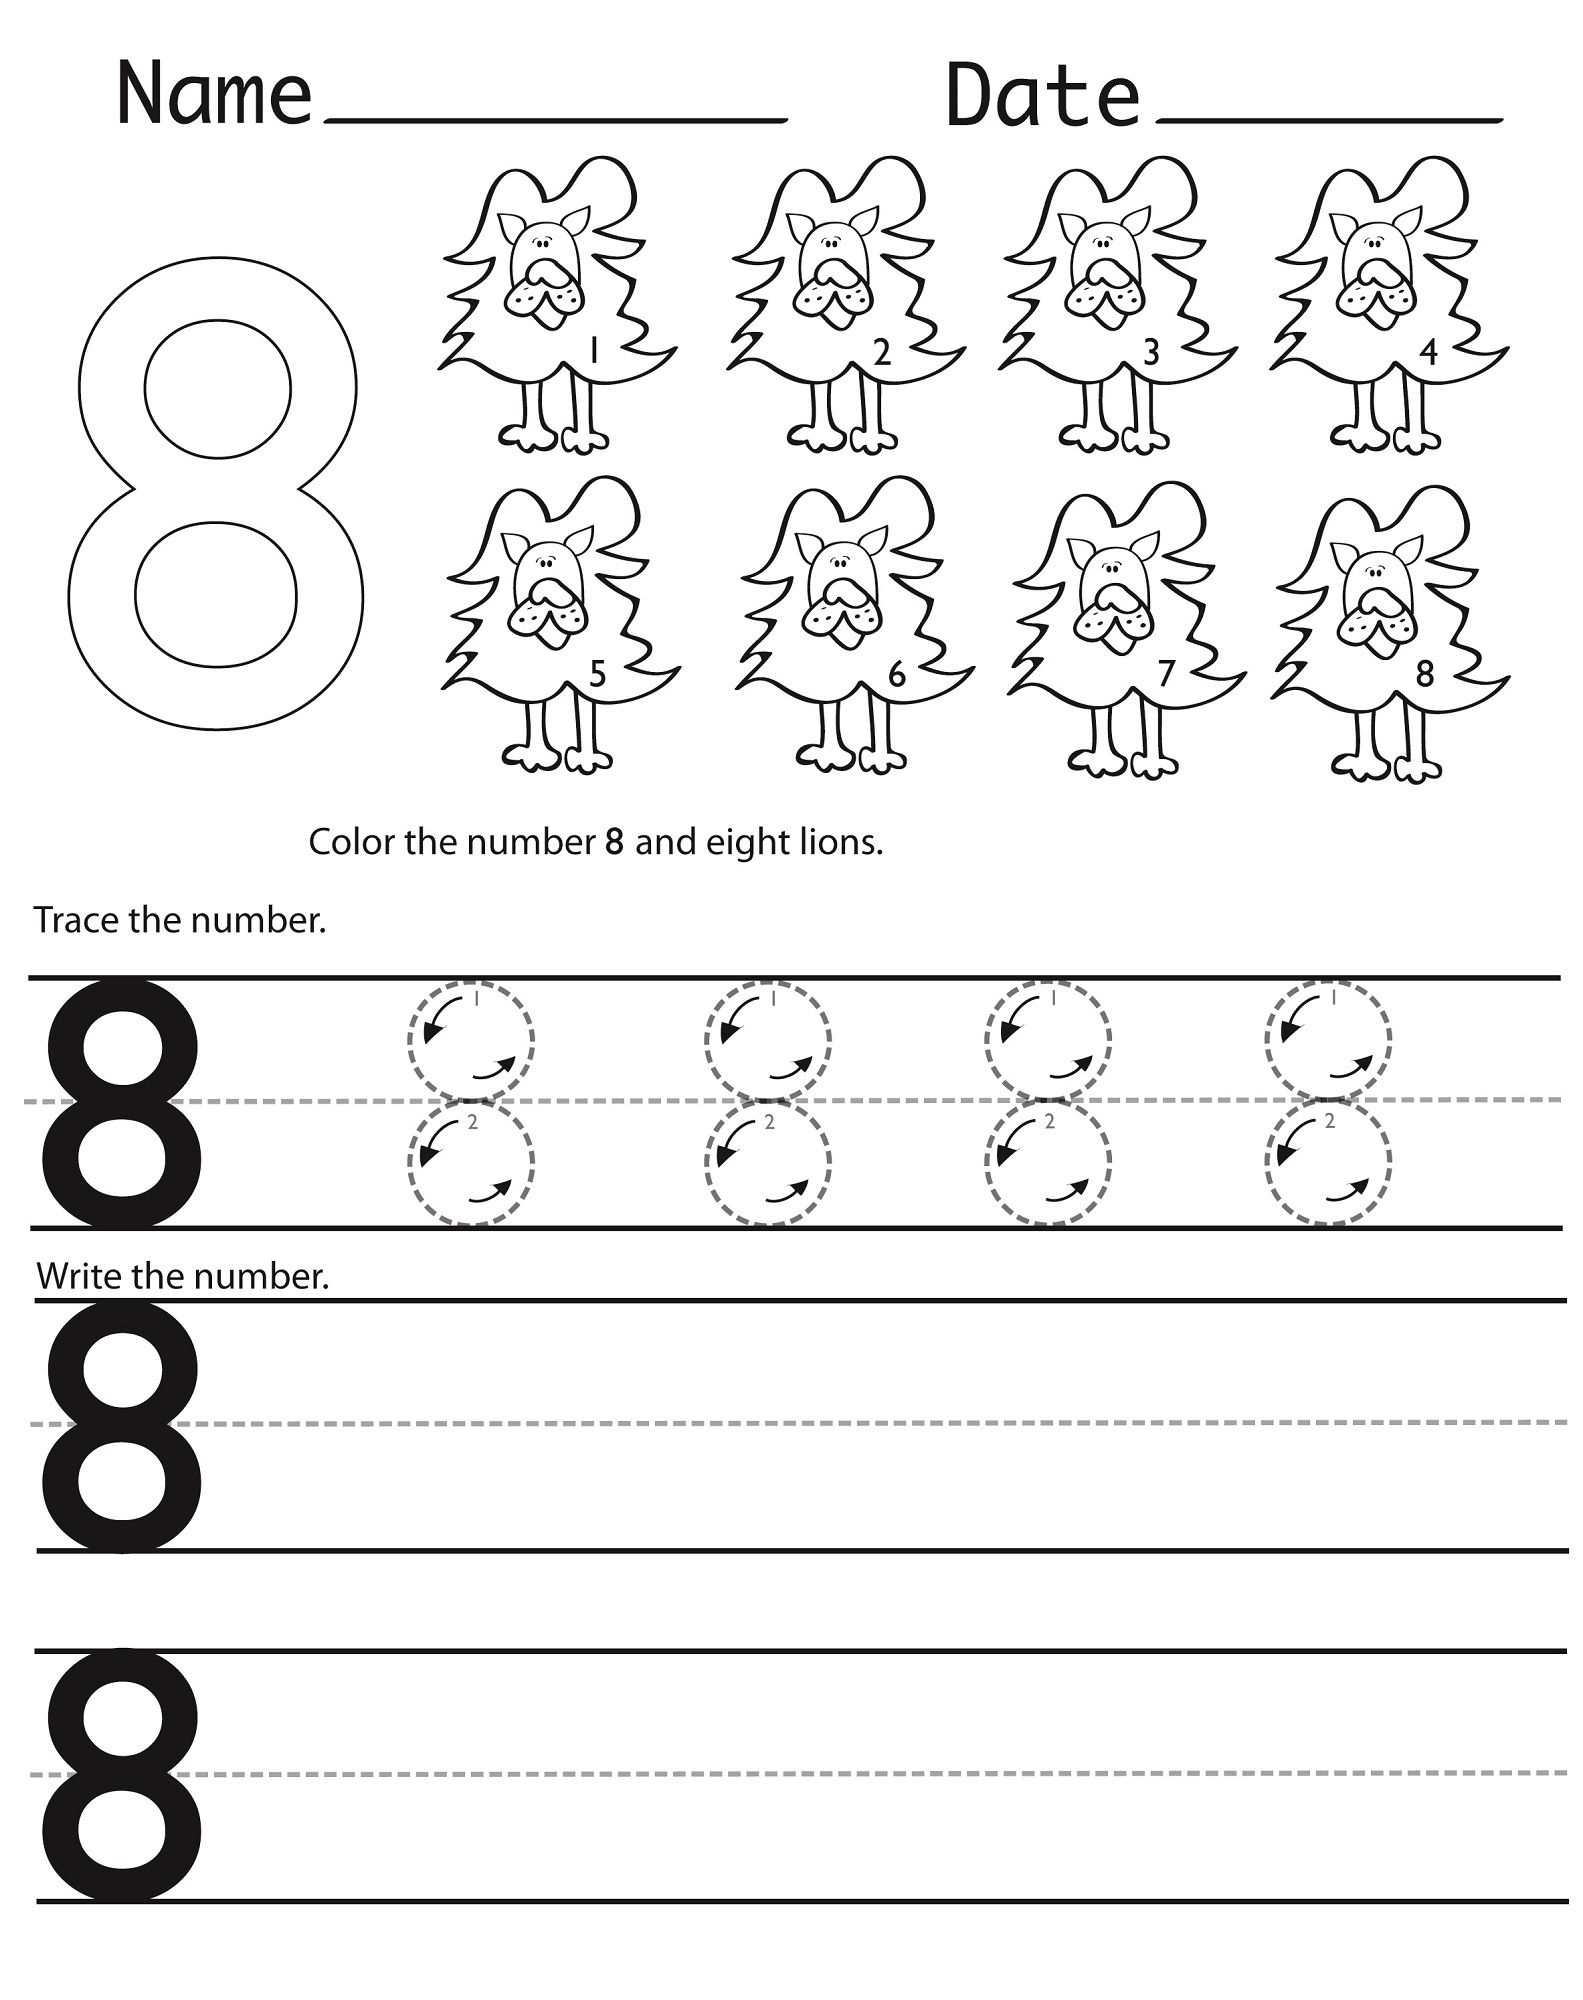 Free Number 8 Worksheet To Print With Images